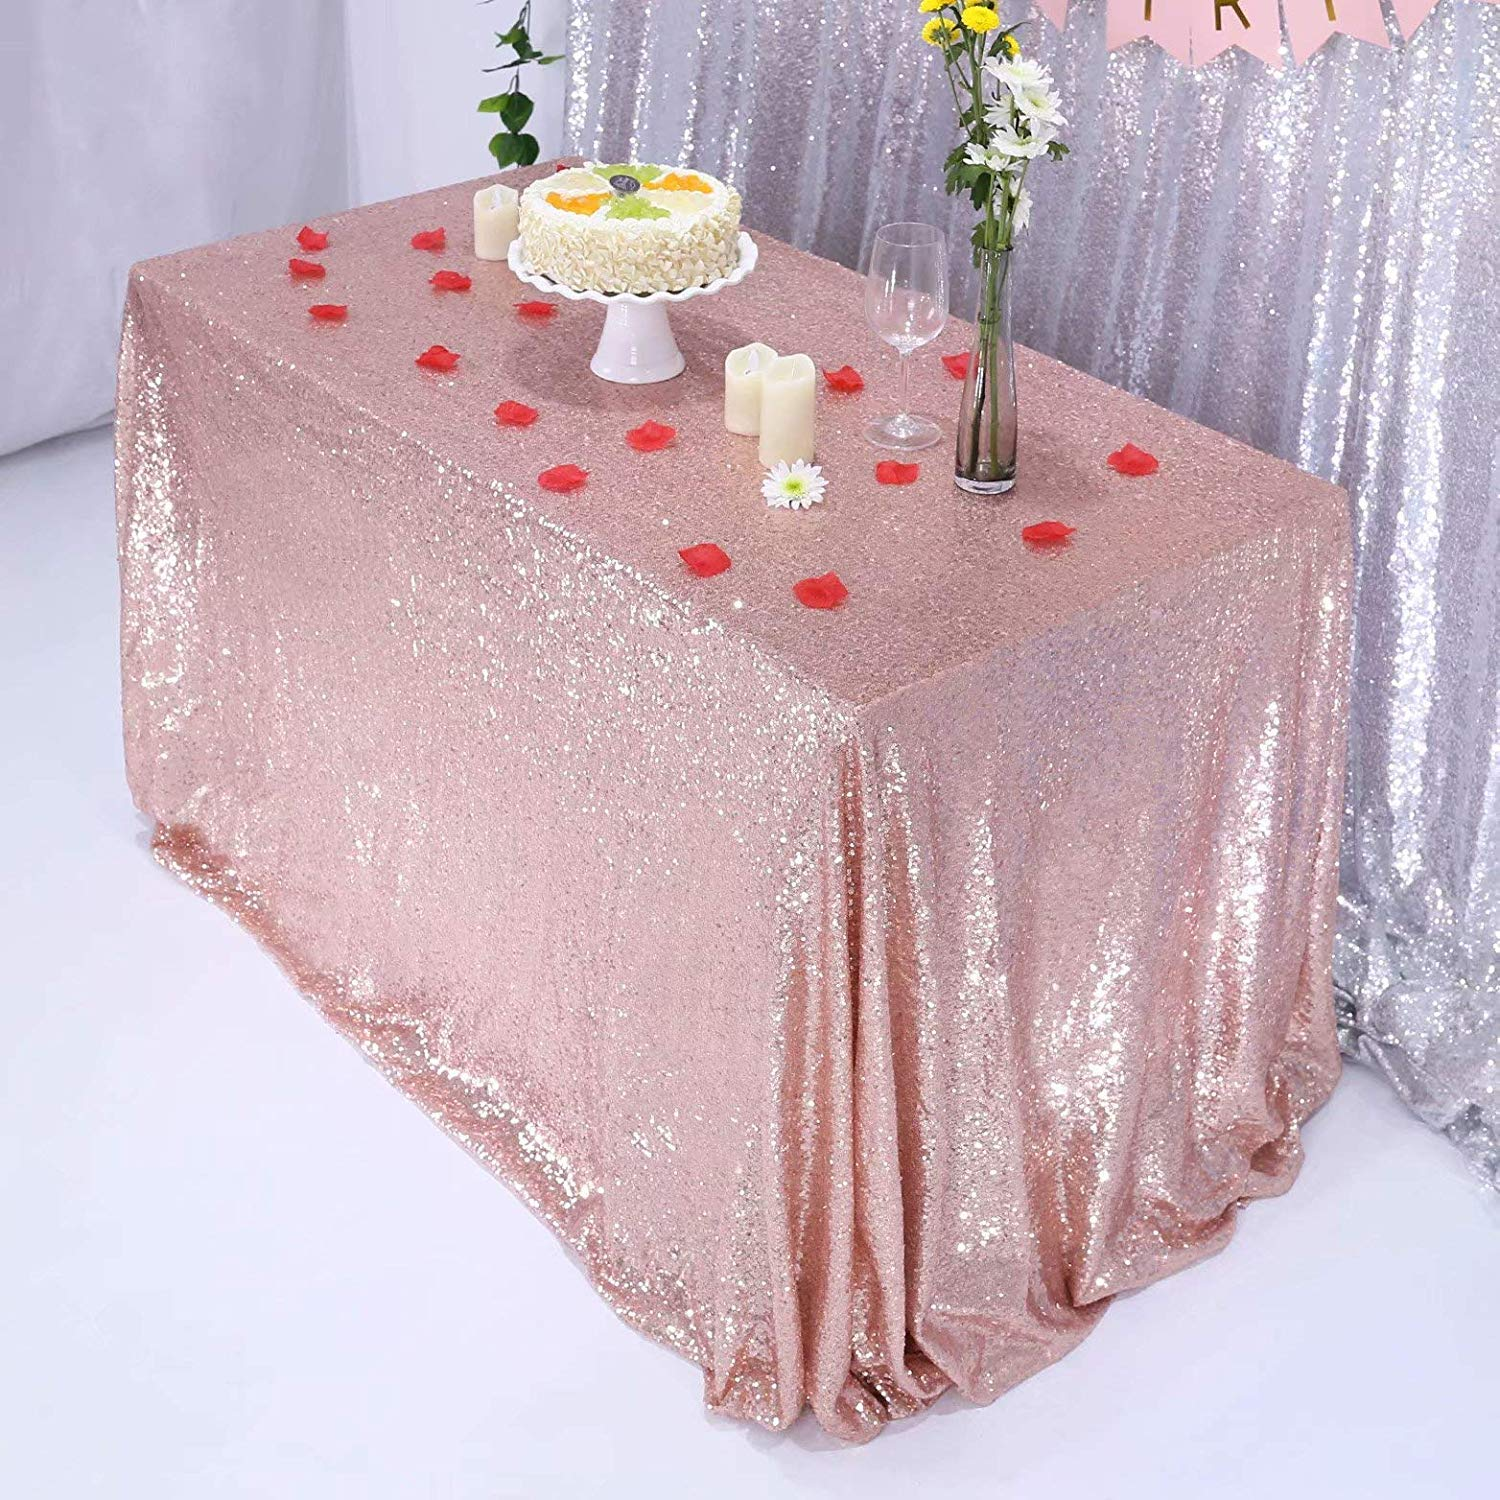 Remarkable Ulmisfee Sequin Tablecloth Table Cloths For Party Wedding Birthday Funny Birthday Cards Online Inifofree Goldxyz